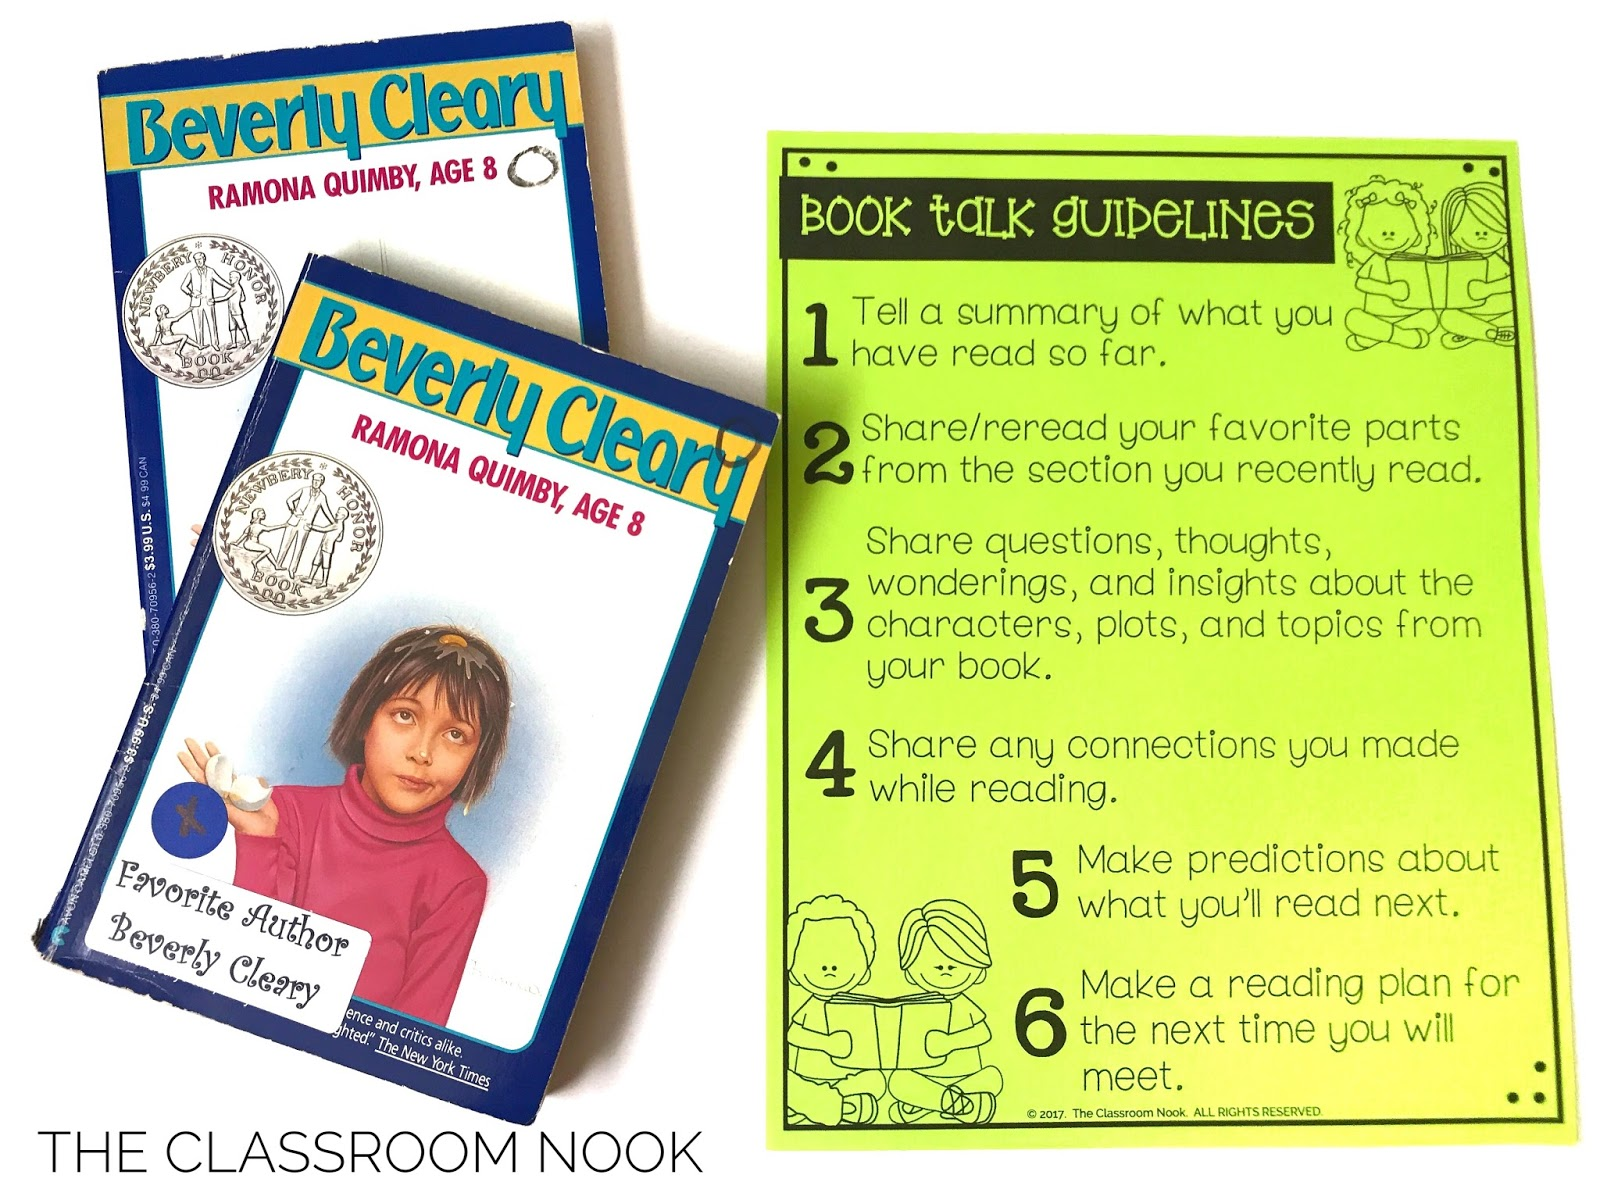 give students book talk guidelines to help foster meaningful conversations